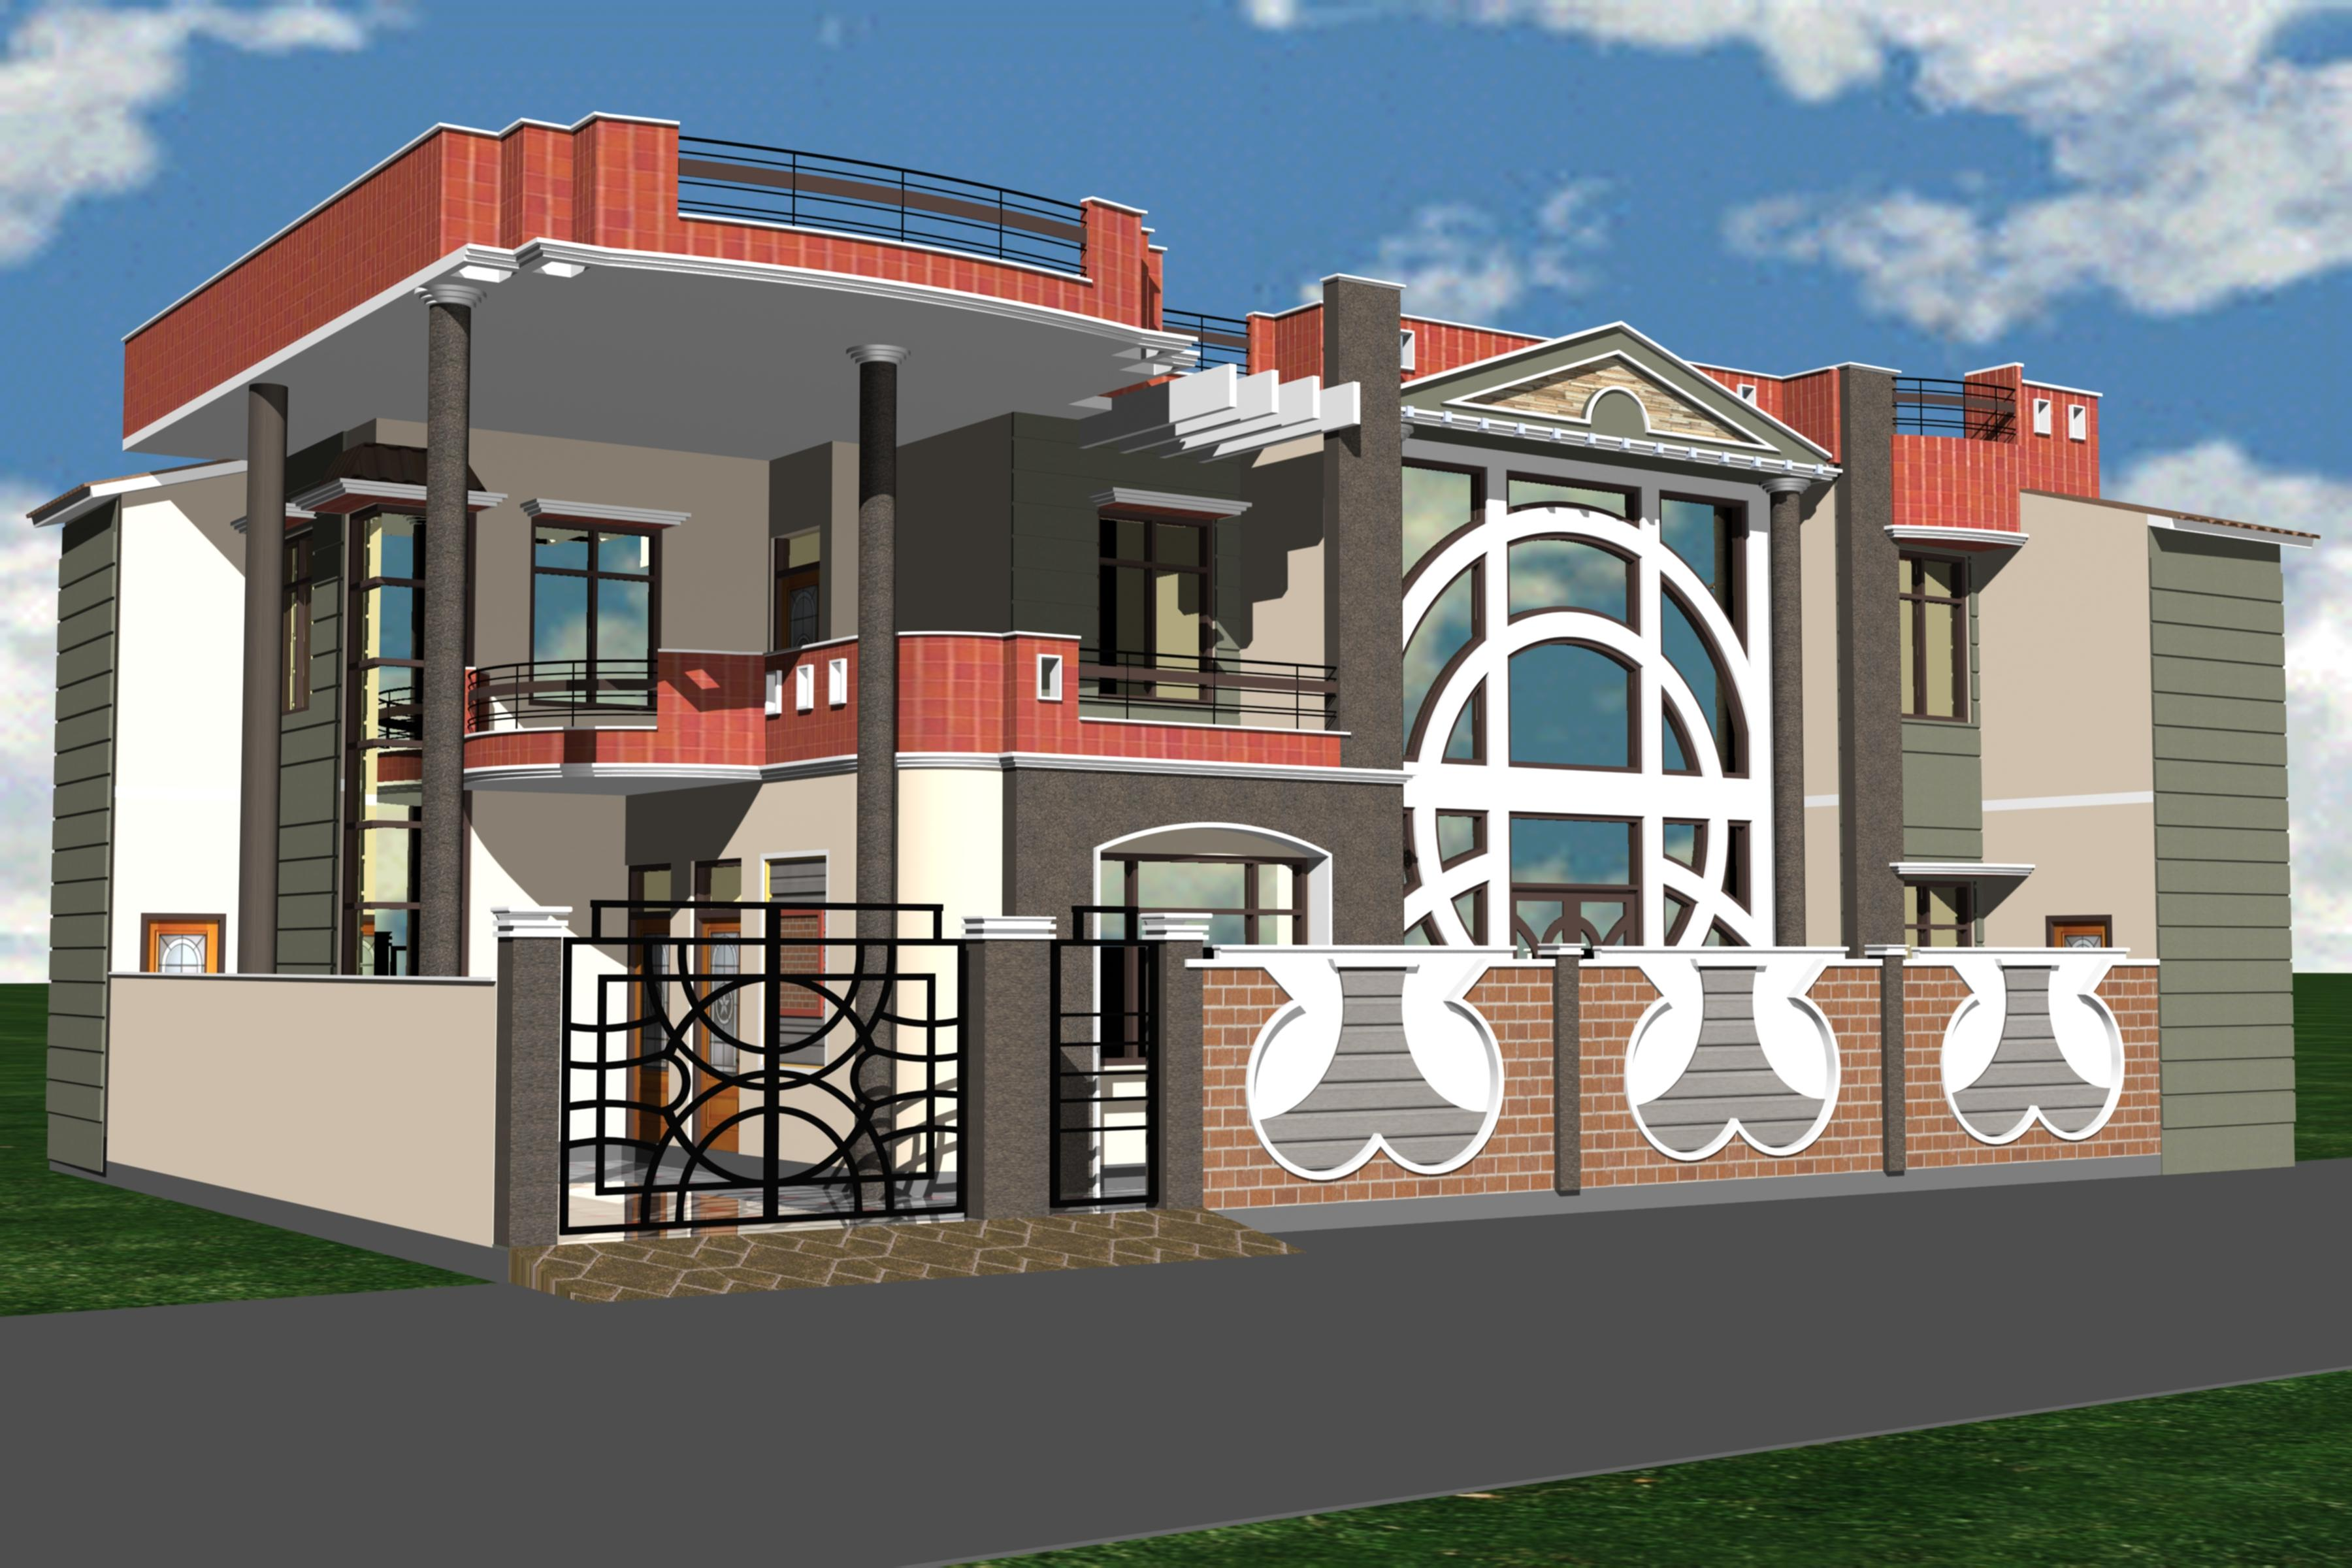 Building Front Elevation Designs Chennai : Indian building front elevation houses plans designs